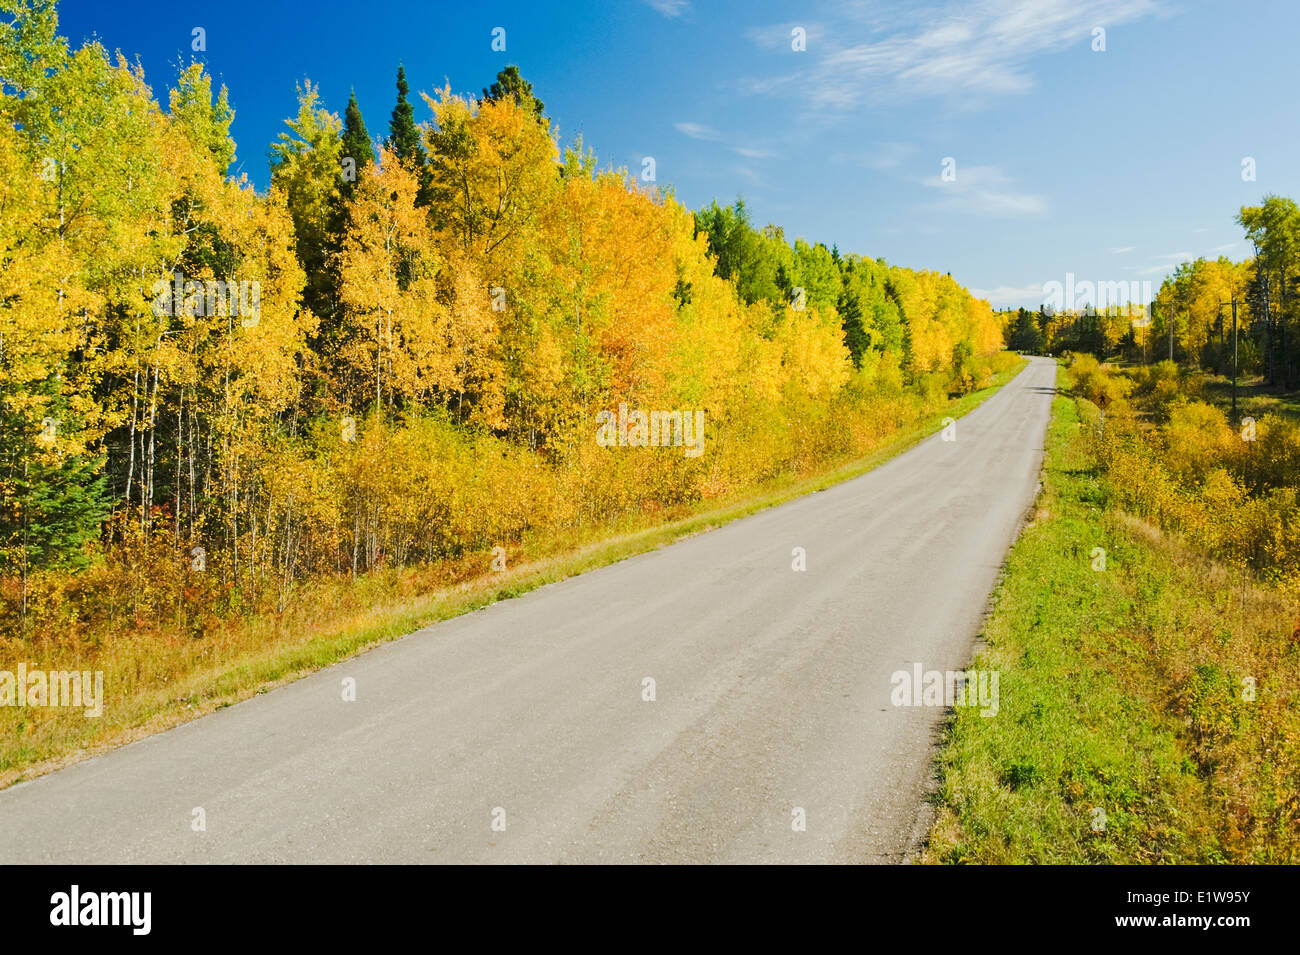 Autumn along a road going through Whiteshell Provincial Park, Manitoba, Canada - Stock Image